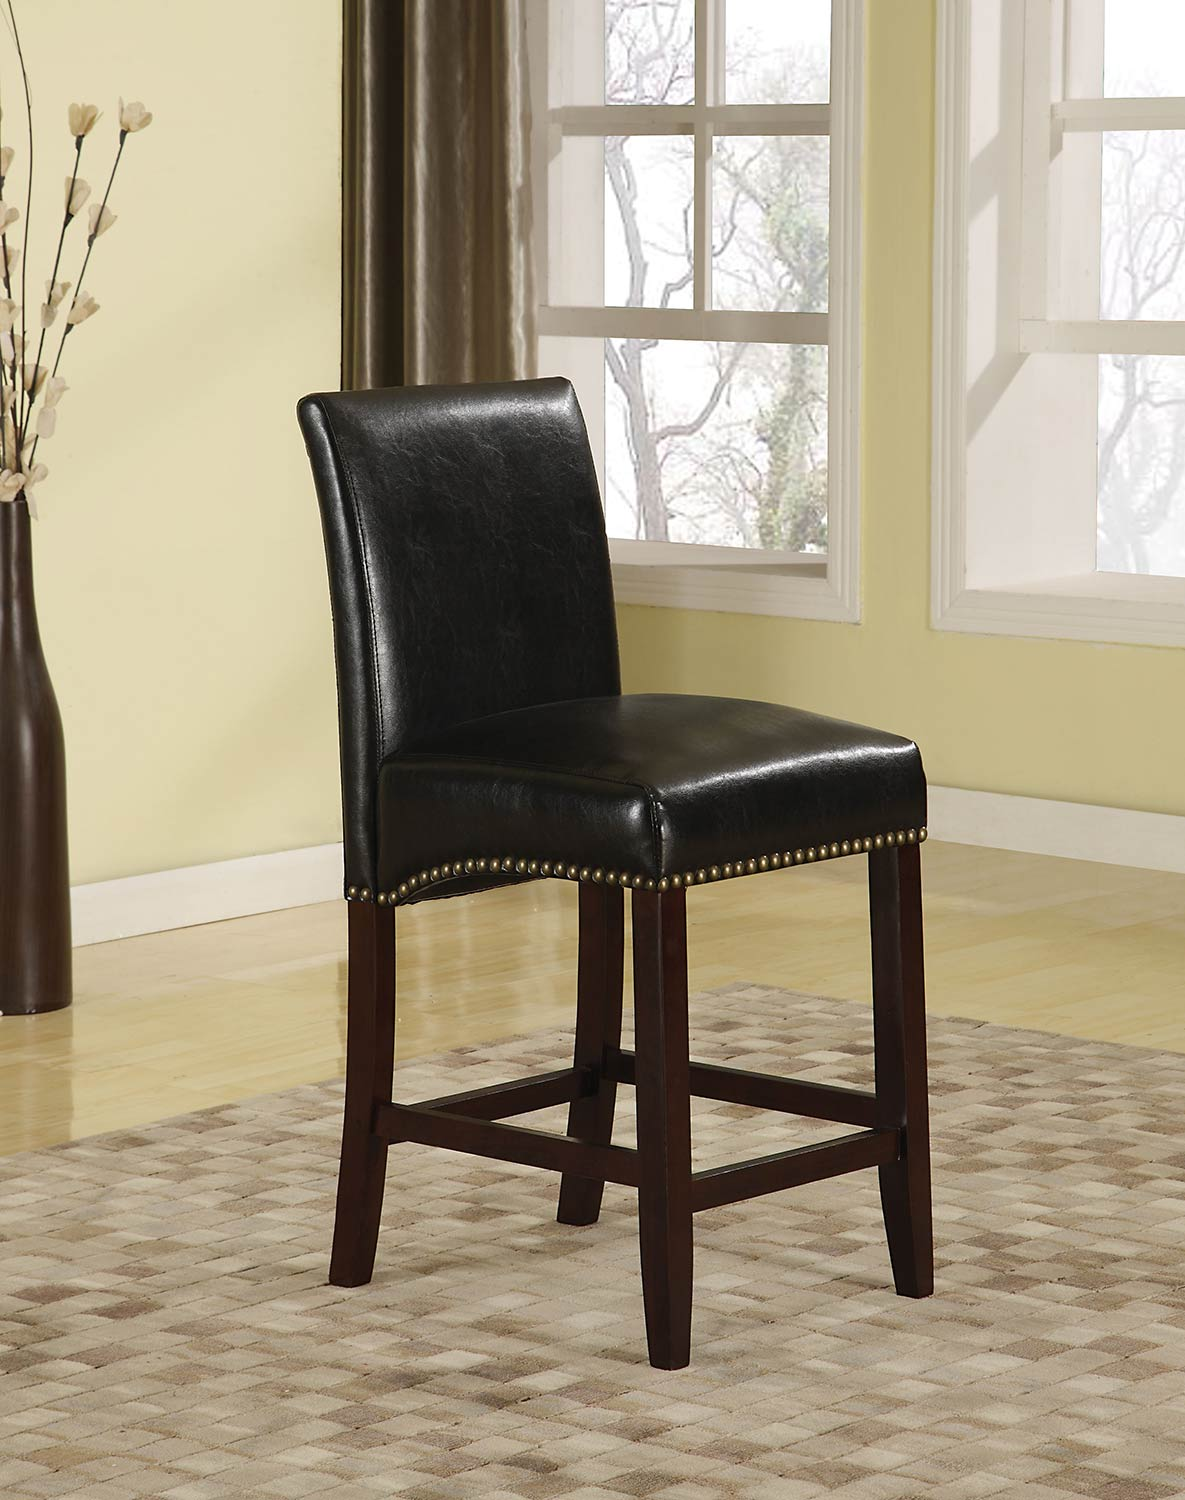 Acme Jakki Bar Chair - Black Vinyl